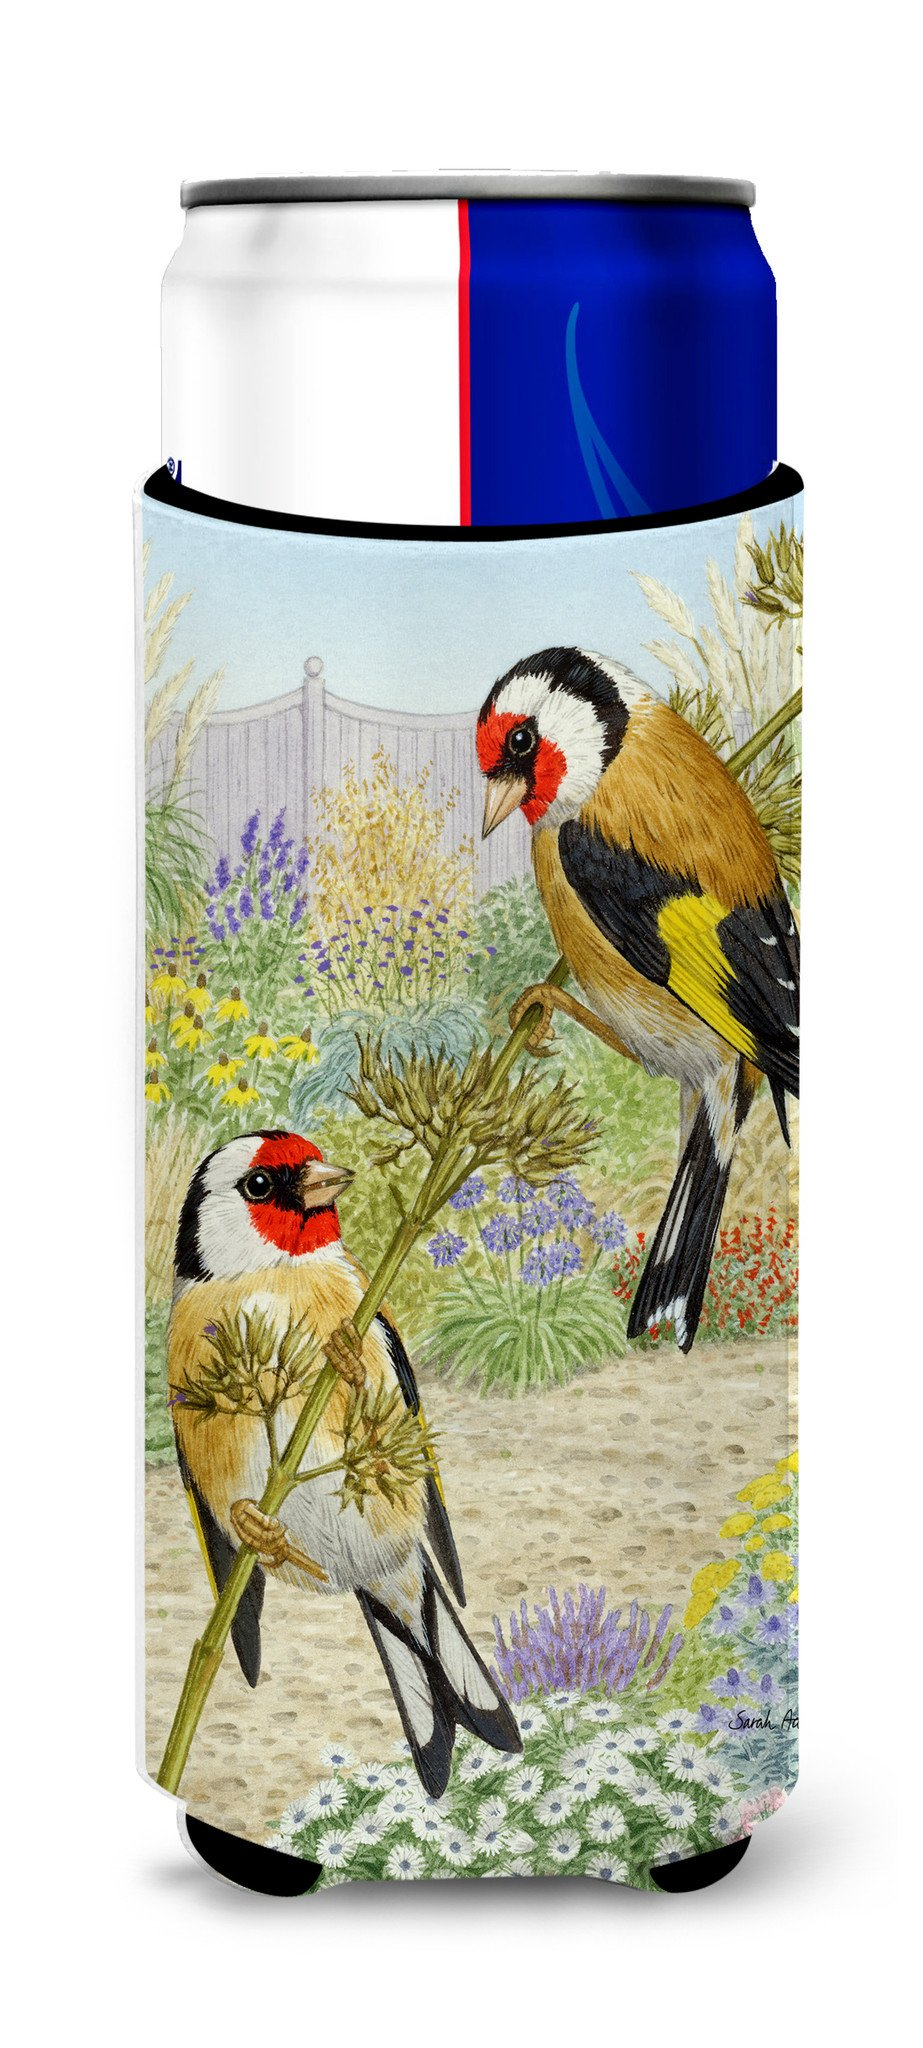 European Goldfinches Ultra Beverage Insulators for slim cans ASA2103MUK by Caroline's Treasures